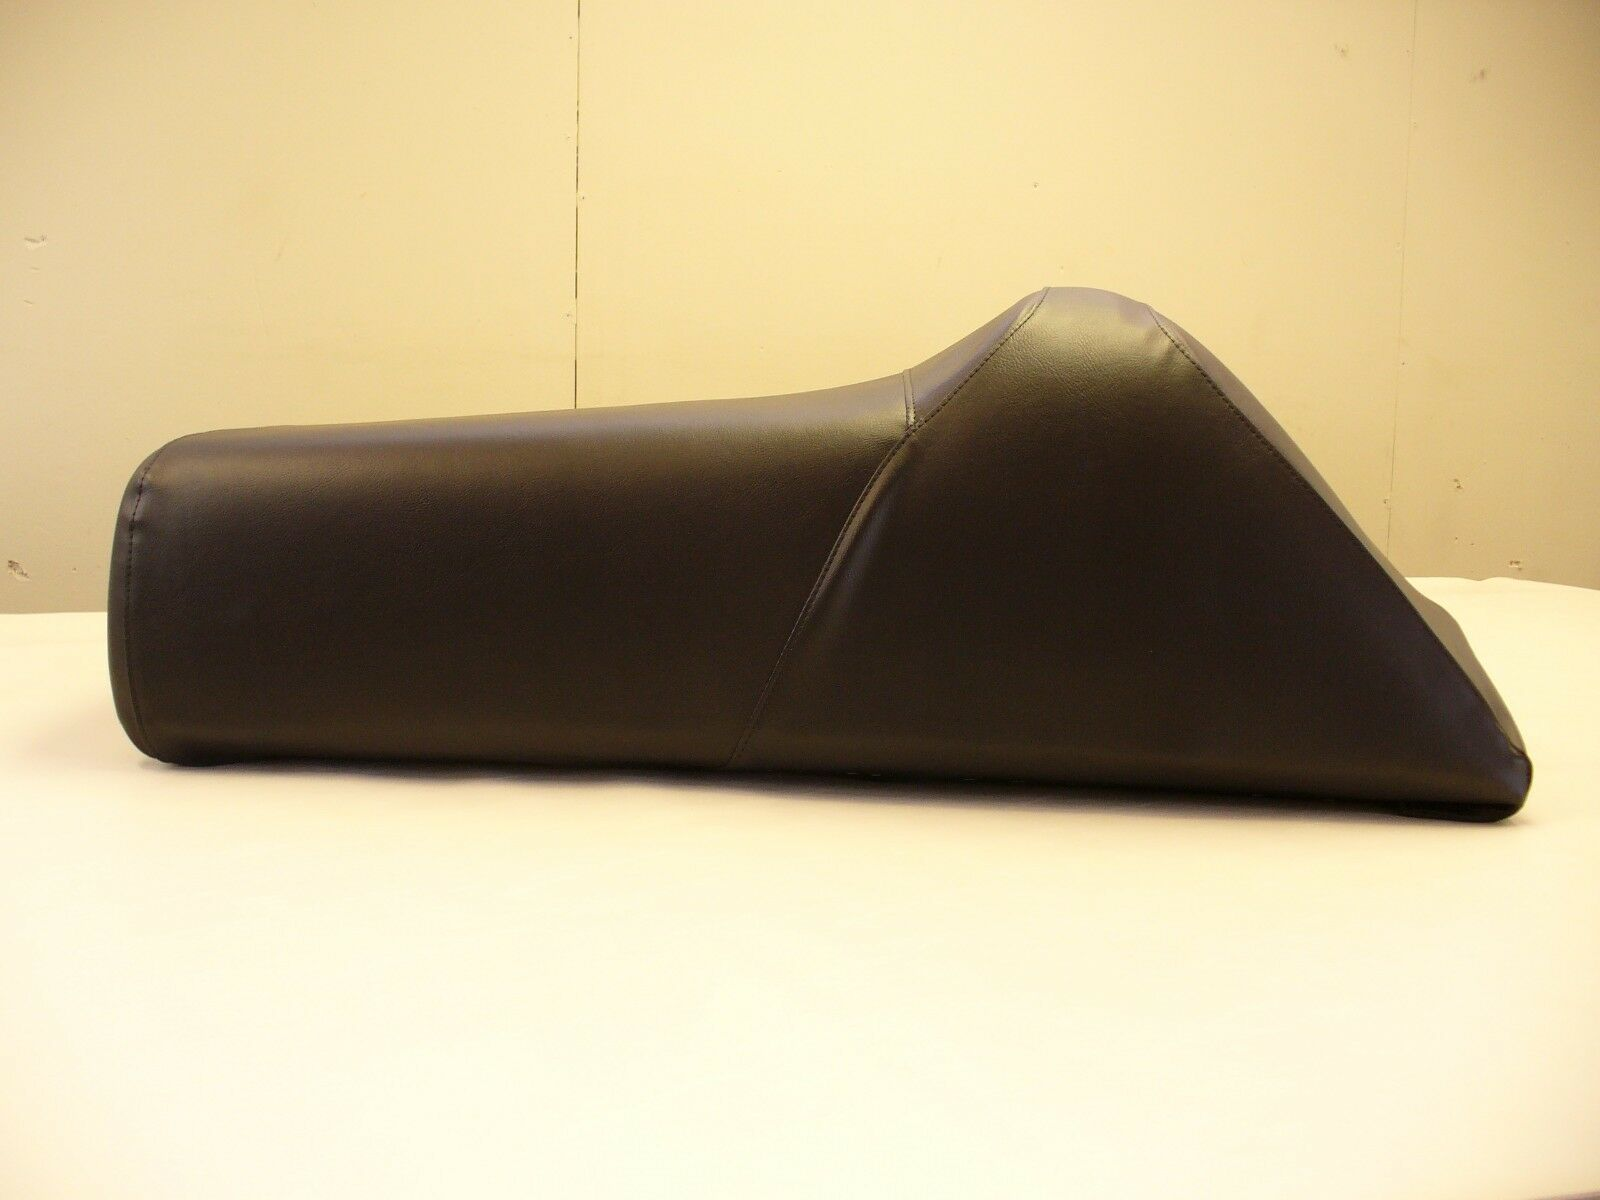 1980-84 JOHN DEERE LIQUIFIRE SNOWMOBILE SEAT COVER NEW